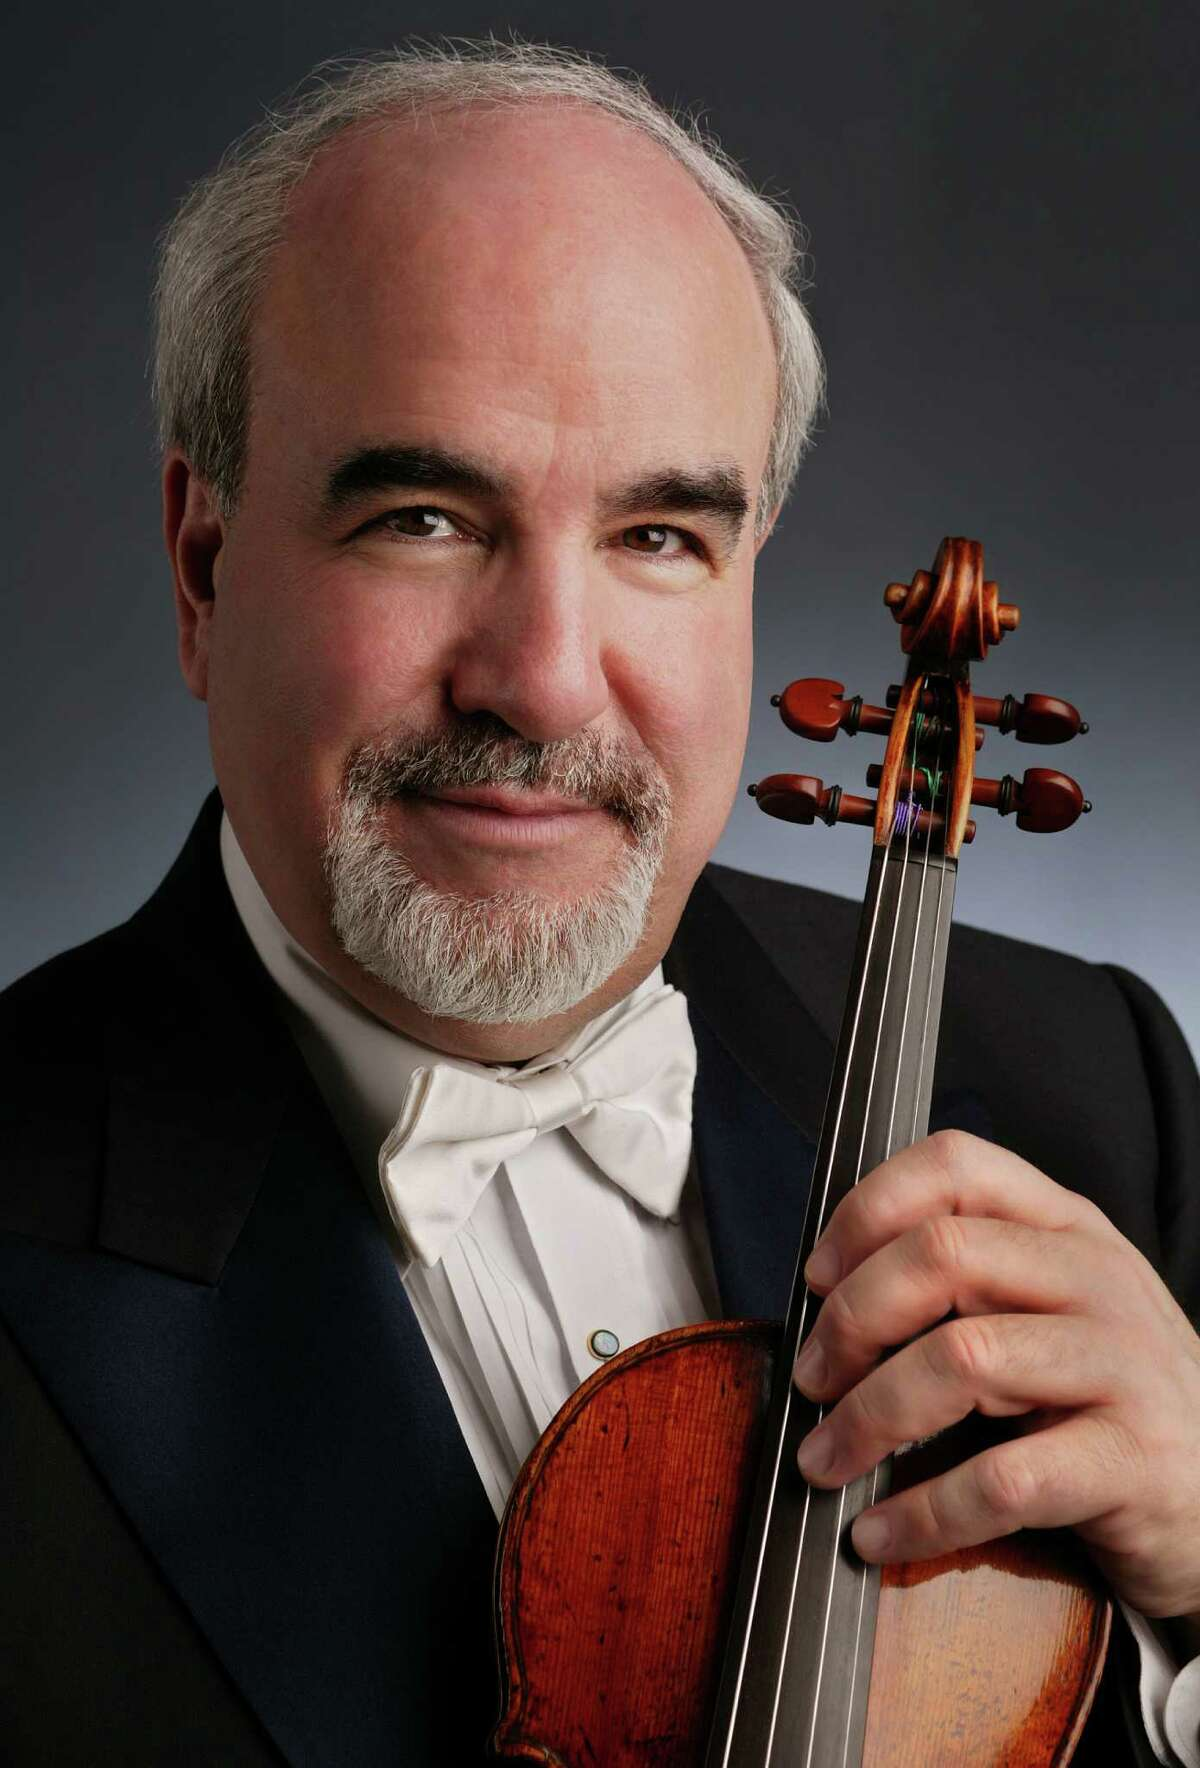 Glenn Dicterow, former concertmaster of the New York Philharmonic Orchestra, will perform and teach at the Texas Music Festival.